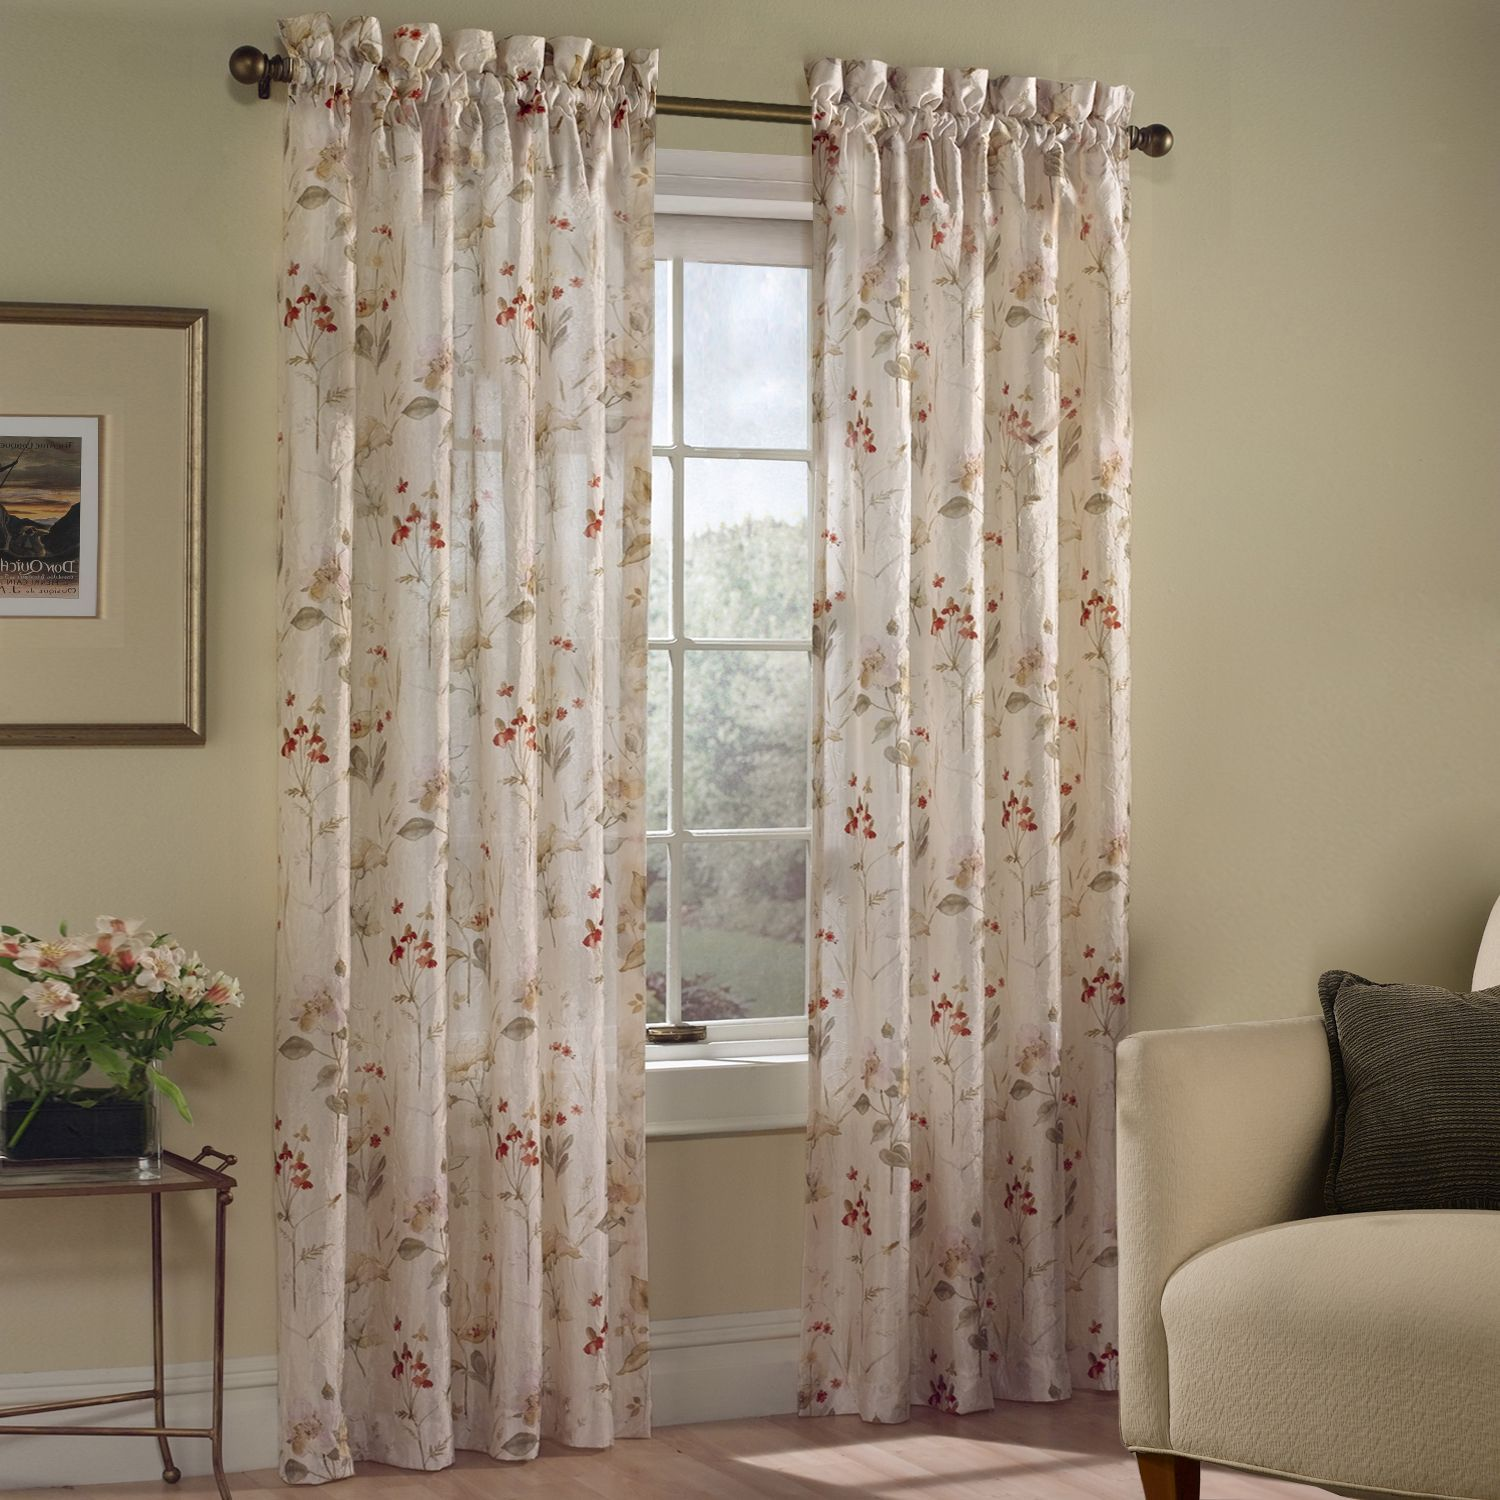 United luxury collection chantelle crushed voile printed floral